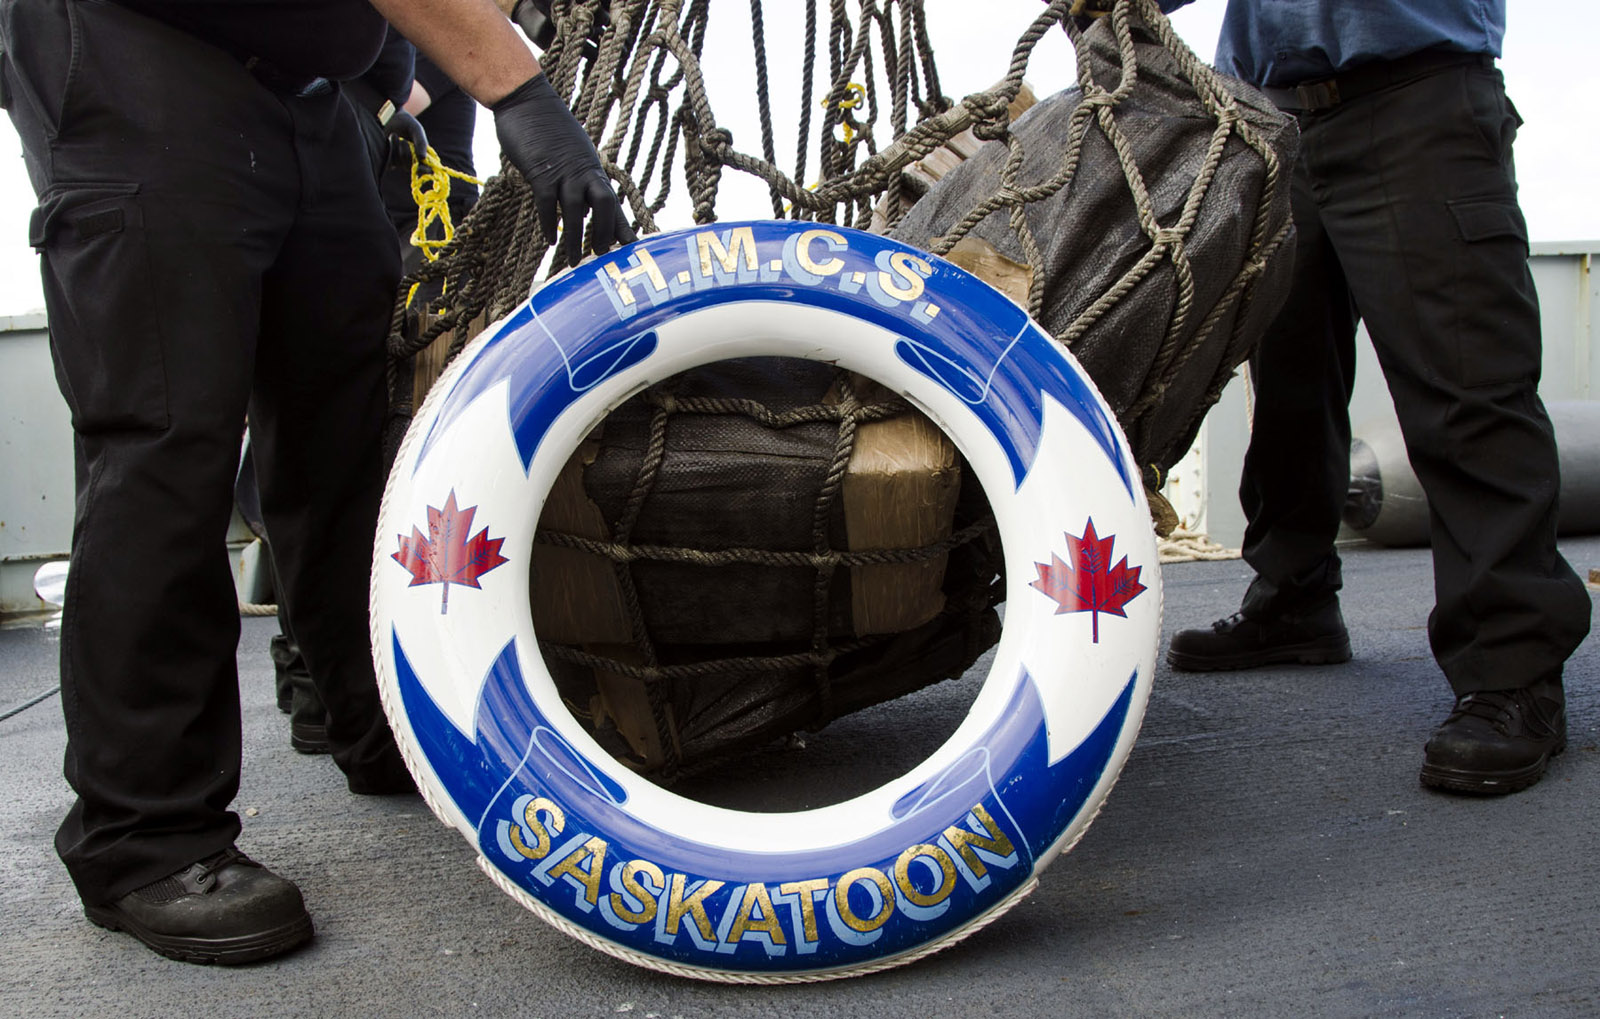 In March and April, HMCS Saskatoon seized 1,120 kilograms of cocaine in international waters in the Eastern Pacific.